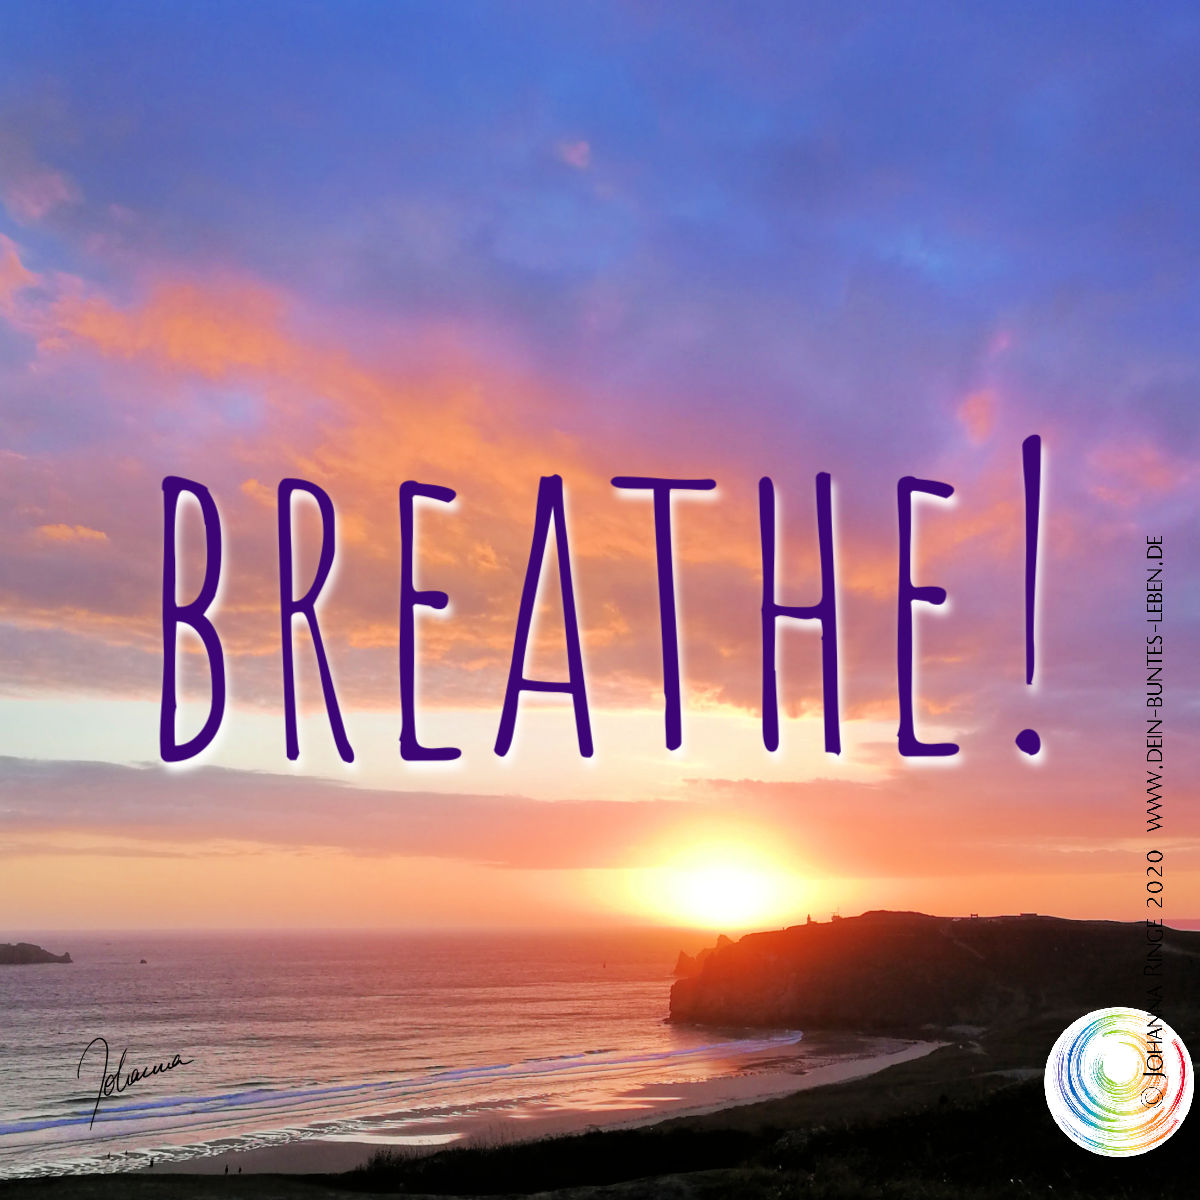 Breathe! (Text on Photograph of a beautiful sunset at the sea) ©Johanna Ringe www.johannaringe.com